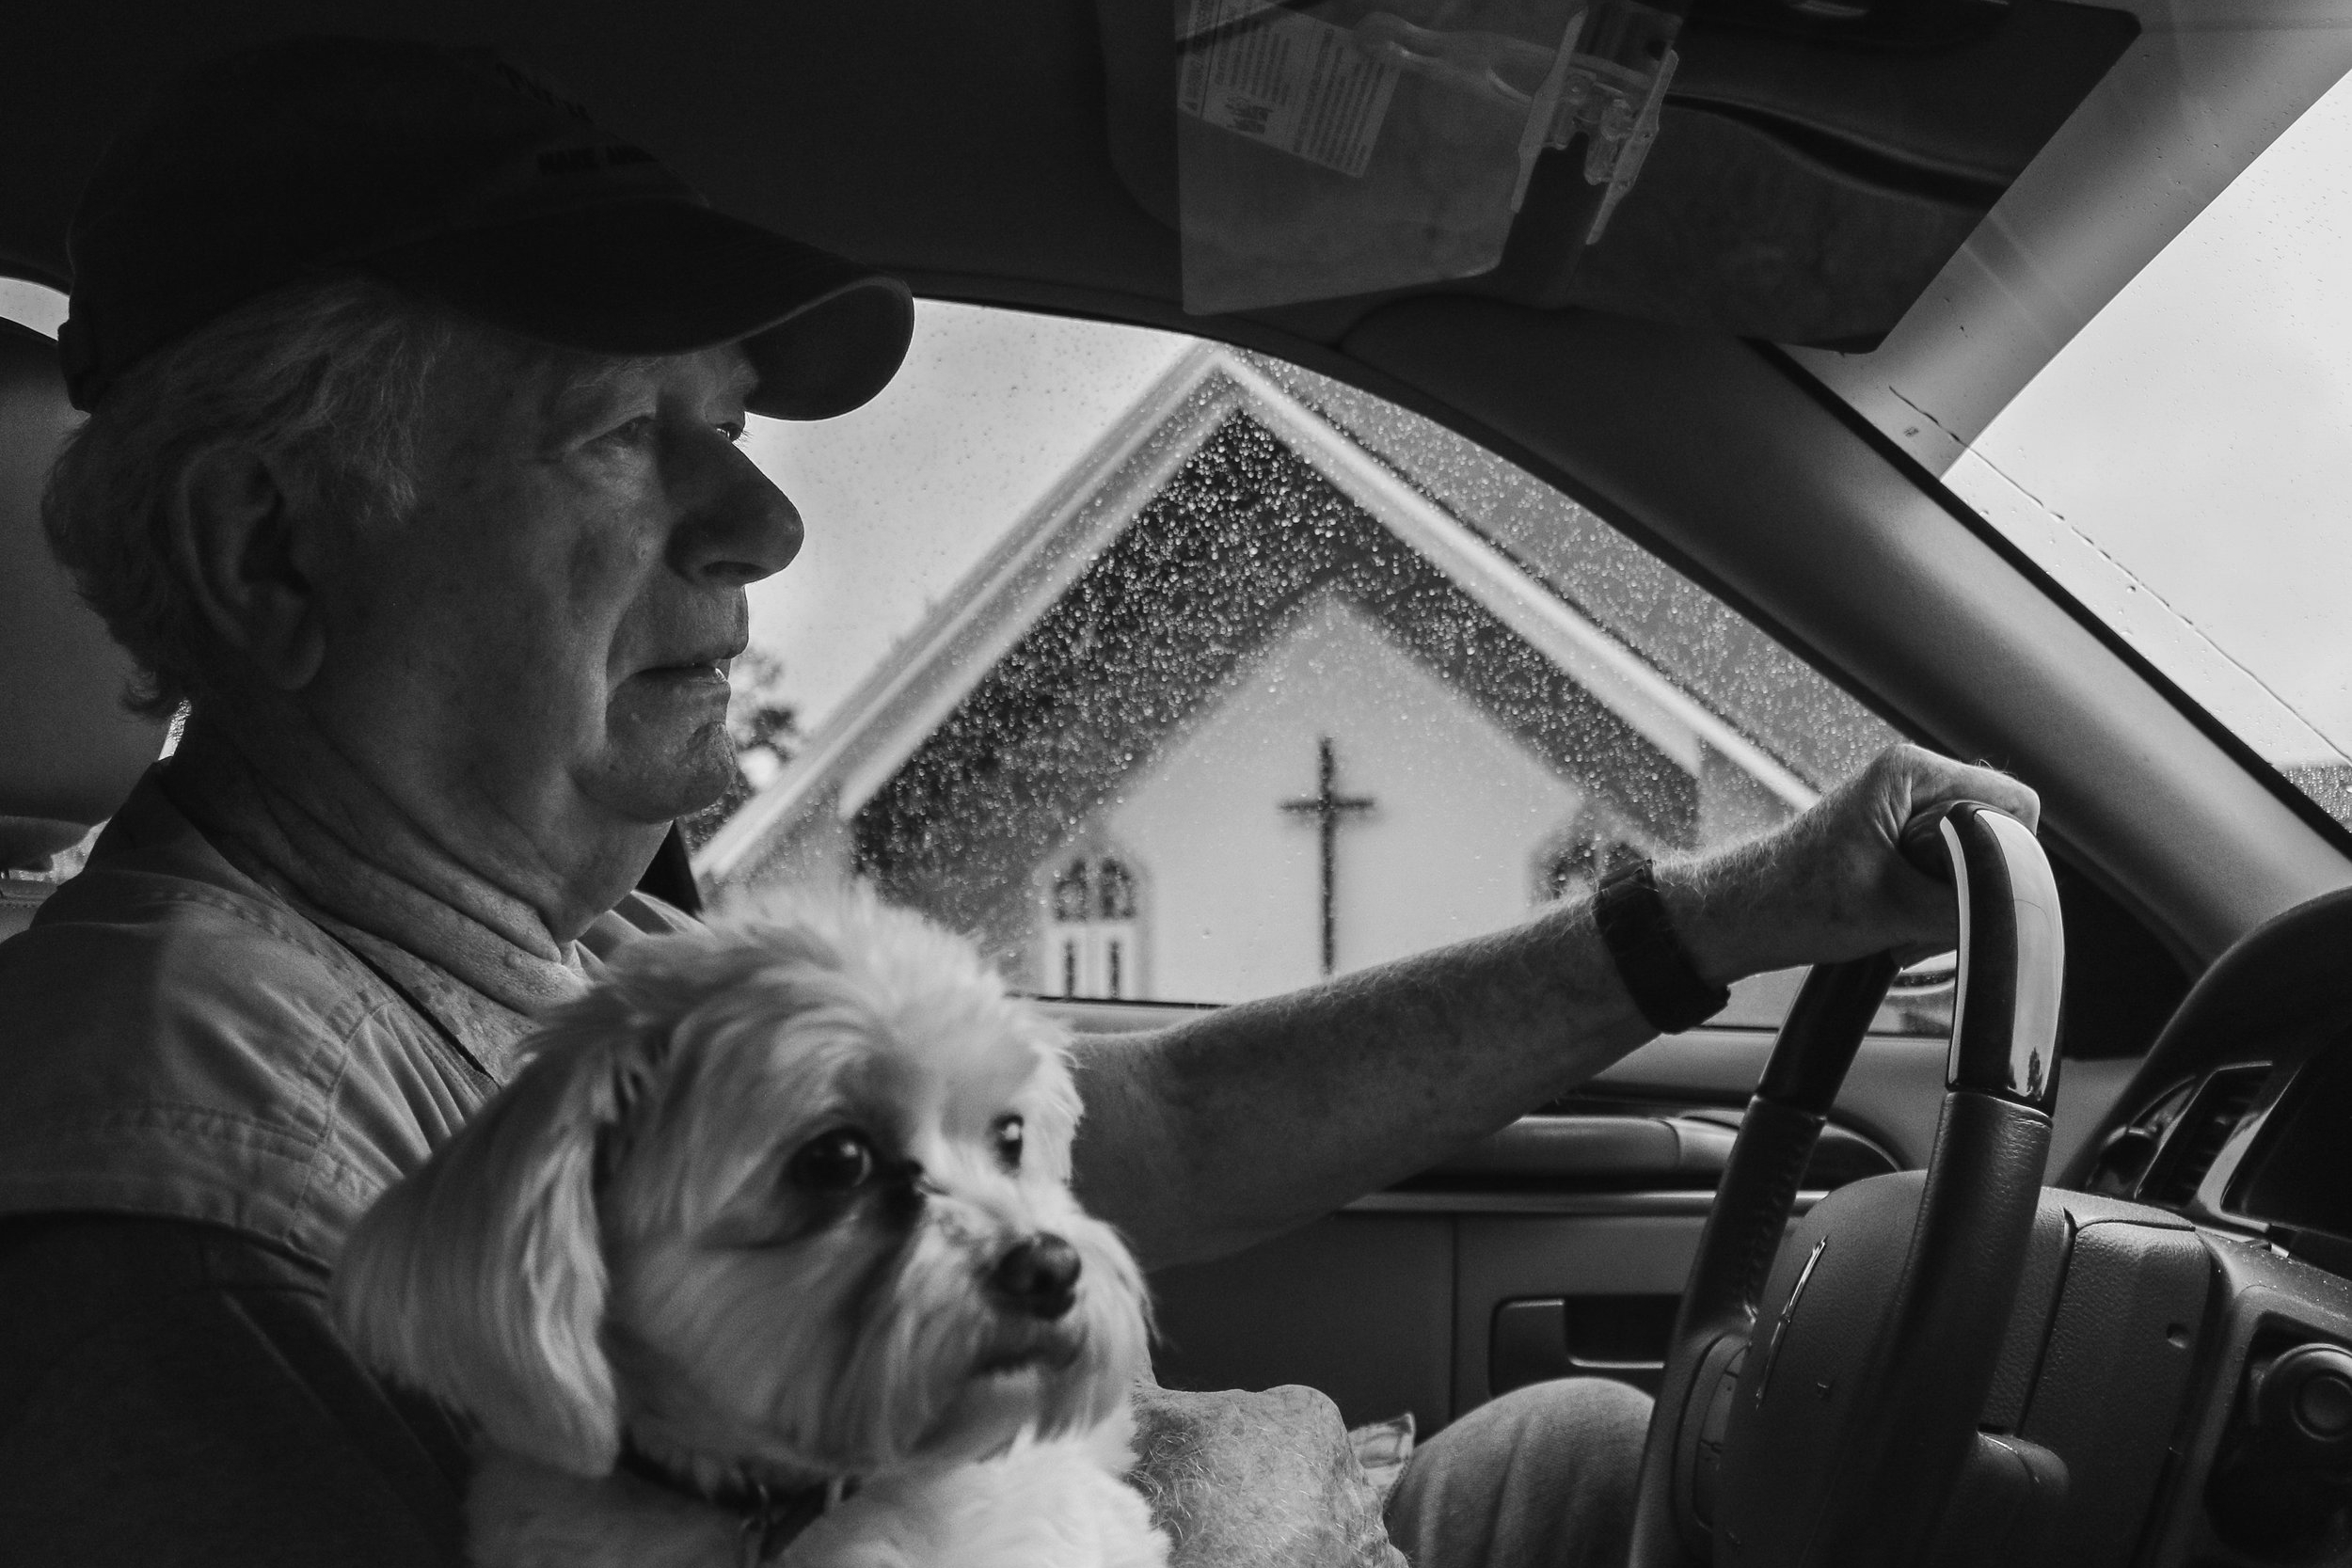 George Cloud drives in Lithia Springs, Georgia, with Molly in his lap on Friday, September 28, 2018.